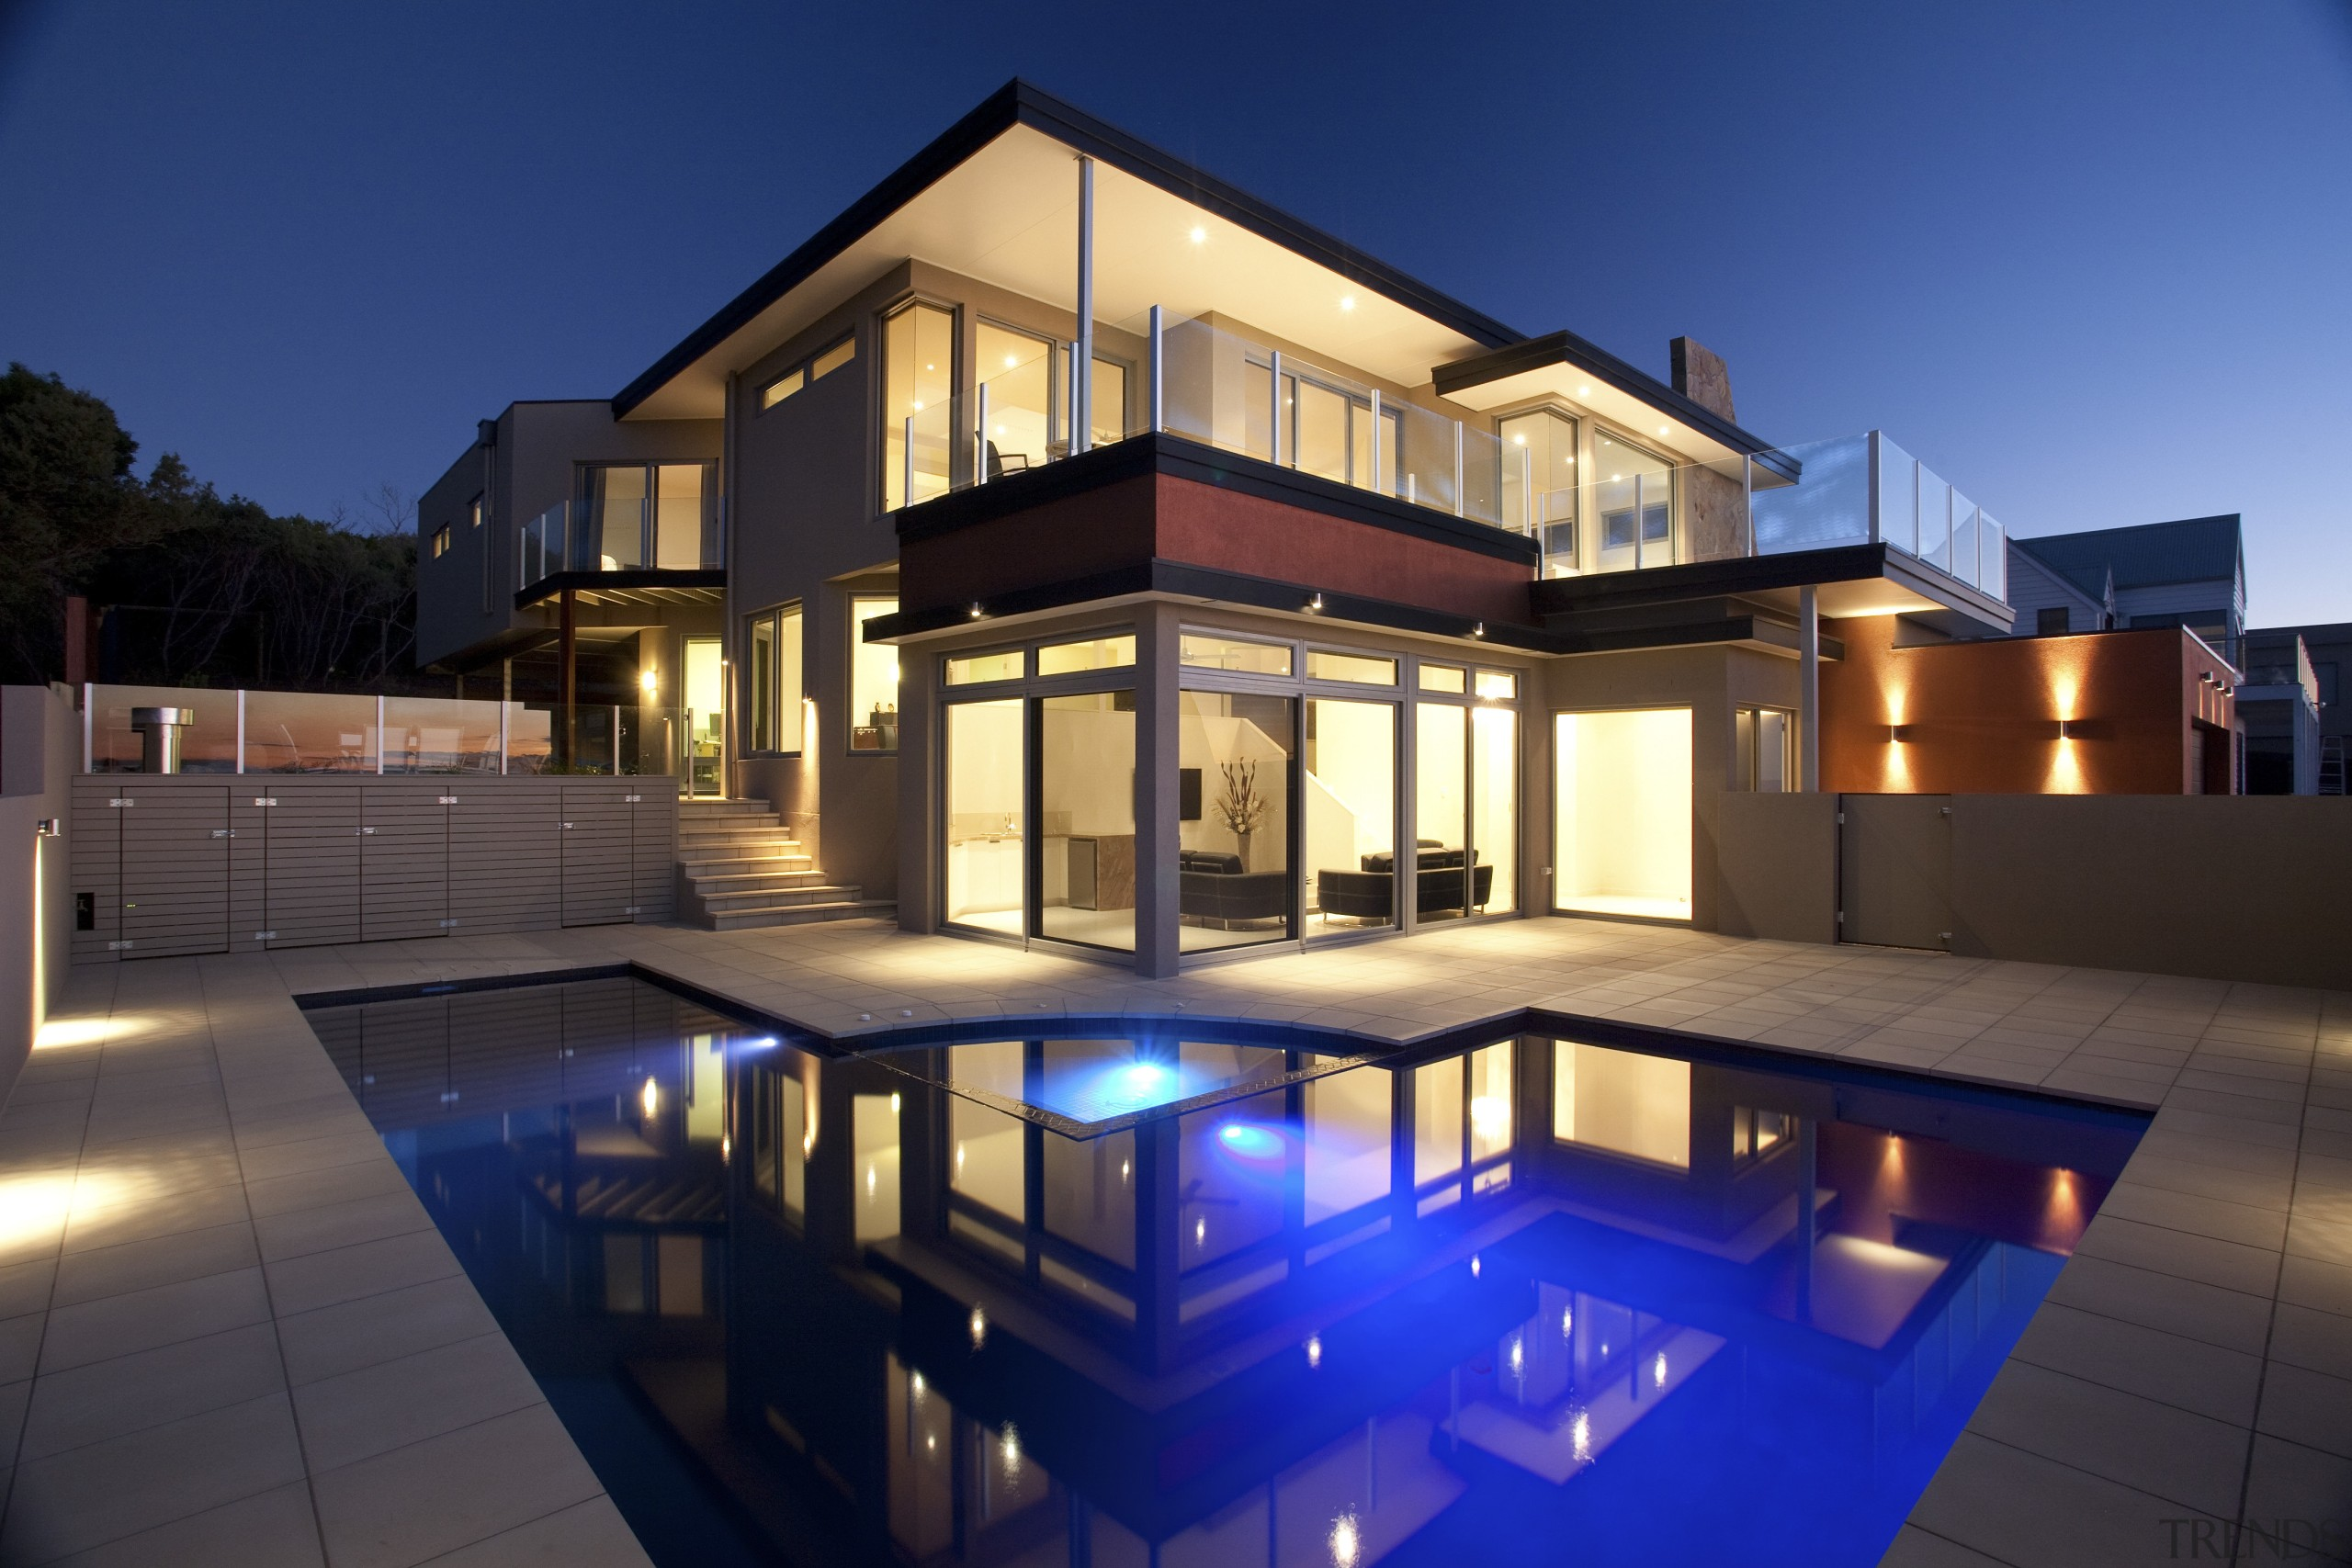 Contemporary home designed and built by Graeme Alexander apartment, architecture, building, elevation, estate, facade, home, house, lighting, mixed use, property, real estate, residential area, swimming pool, villa, window, blue